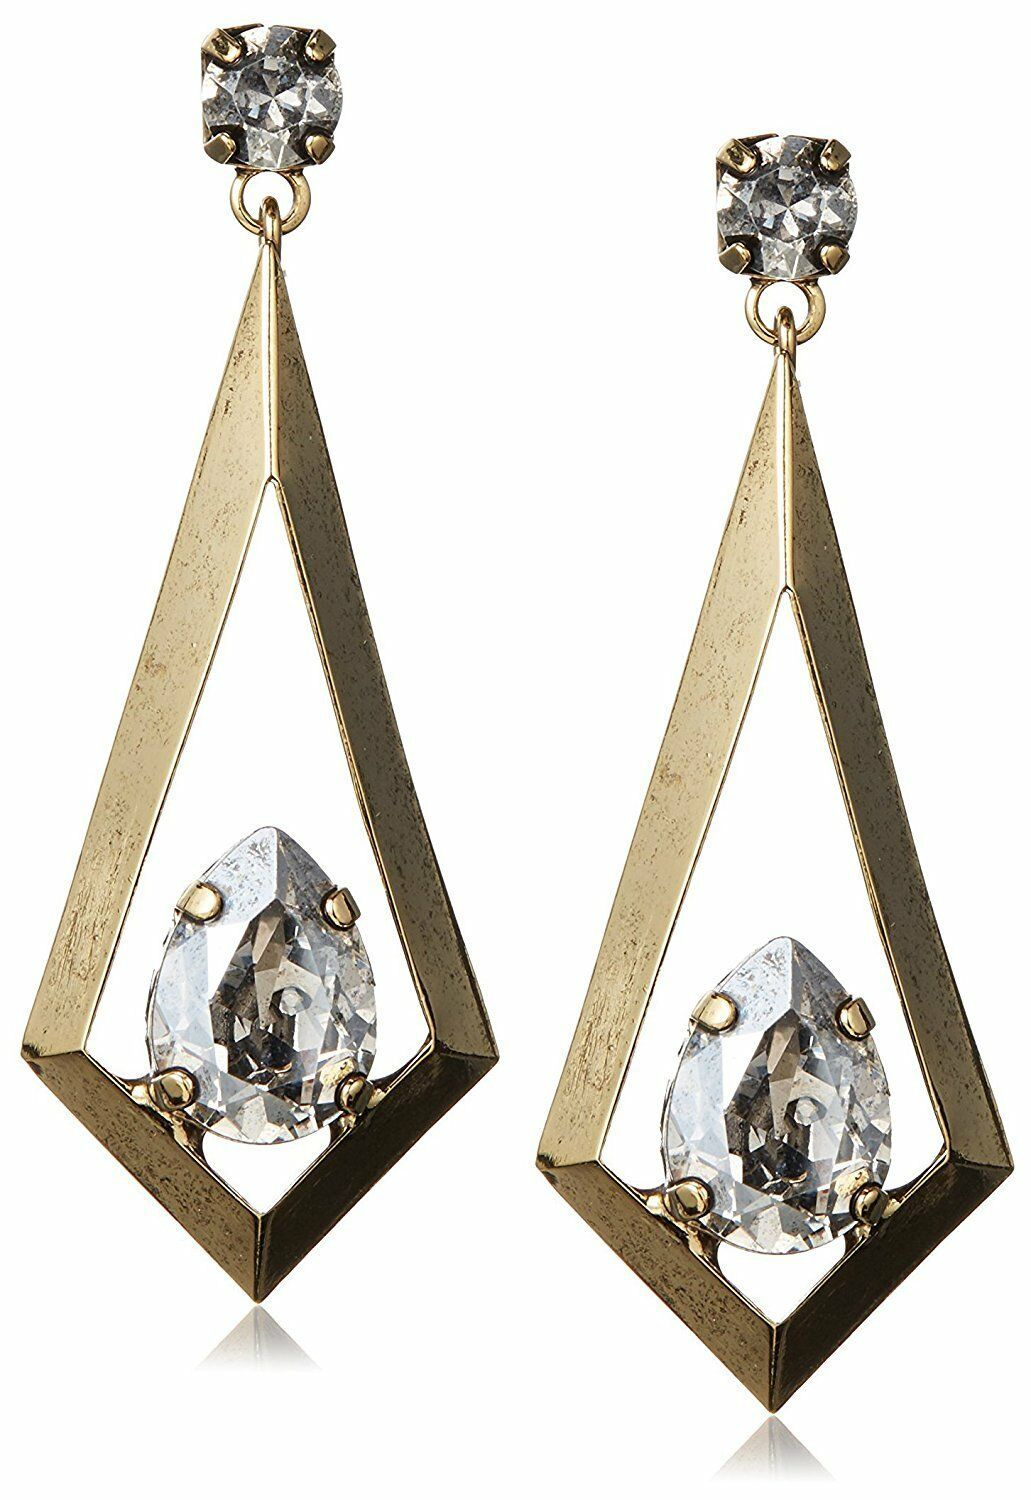 Tova 14mm x 10mm Swarovski Clear Crystal Gold Tone Triangle Kite Drop Earrings